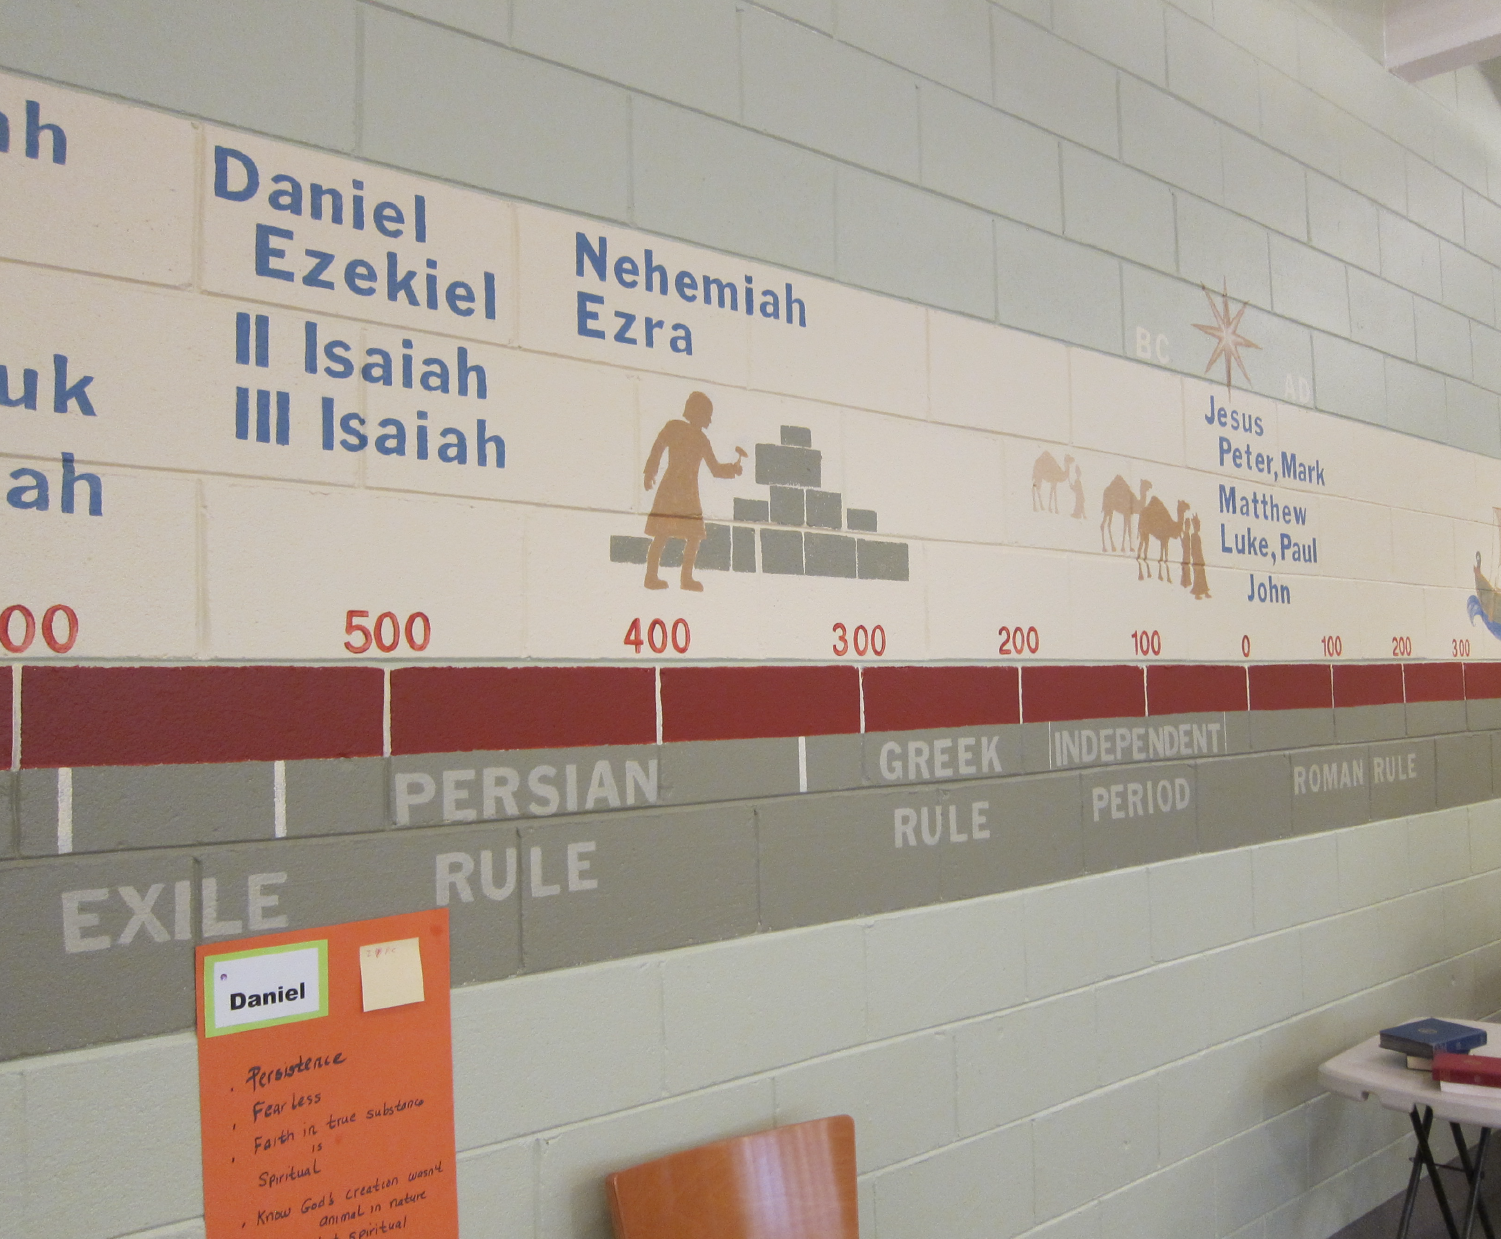 Bible timeline in the Sunday School at First Church of Christ, Scientist in Glen Ellyn, IL